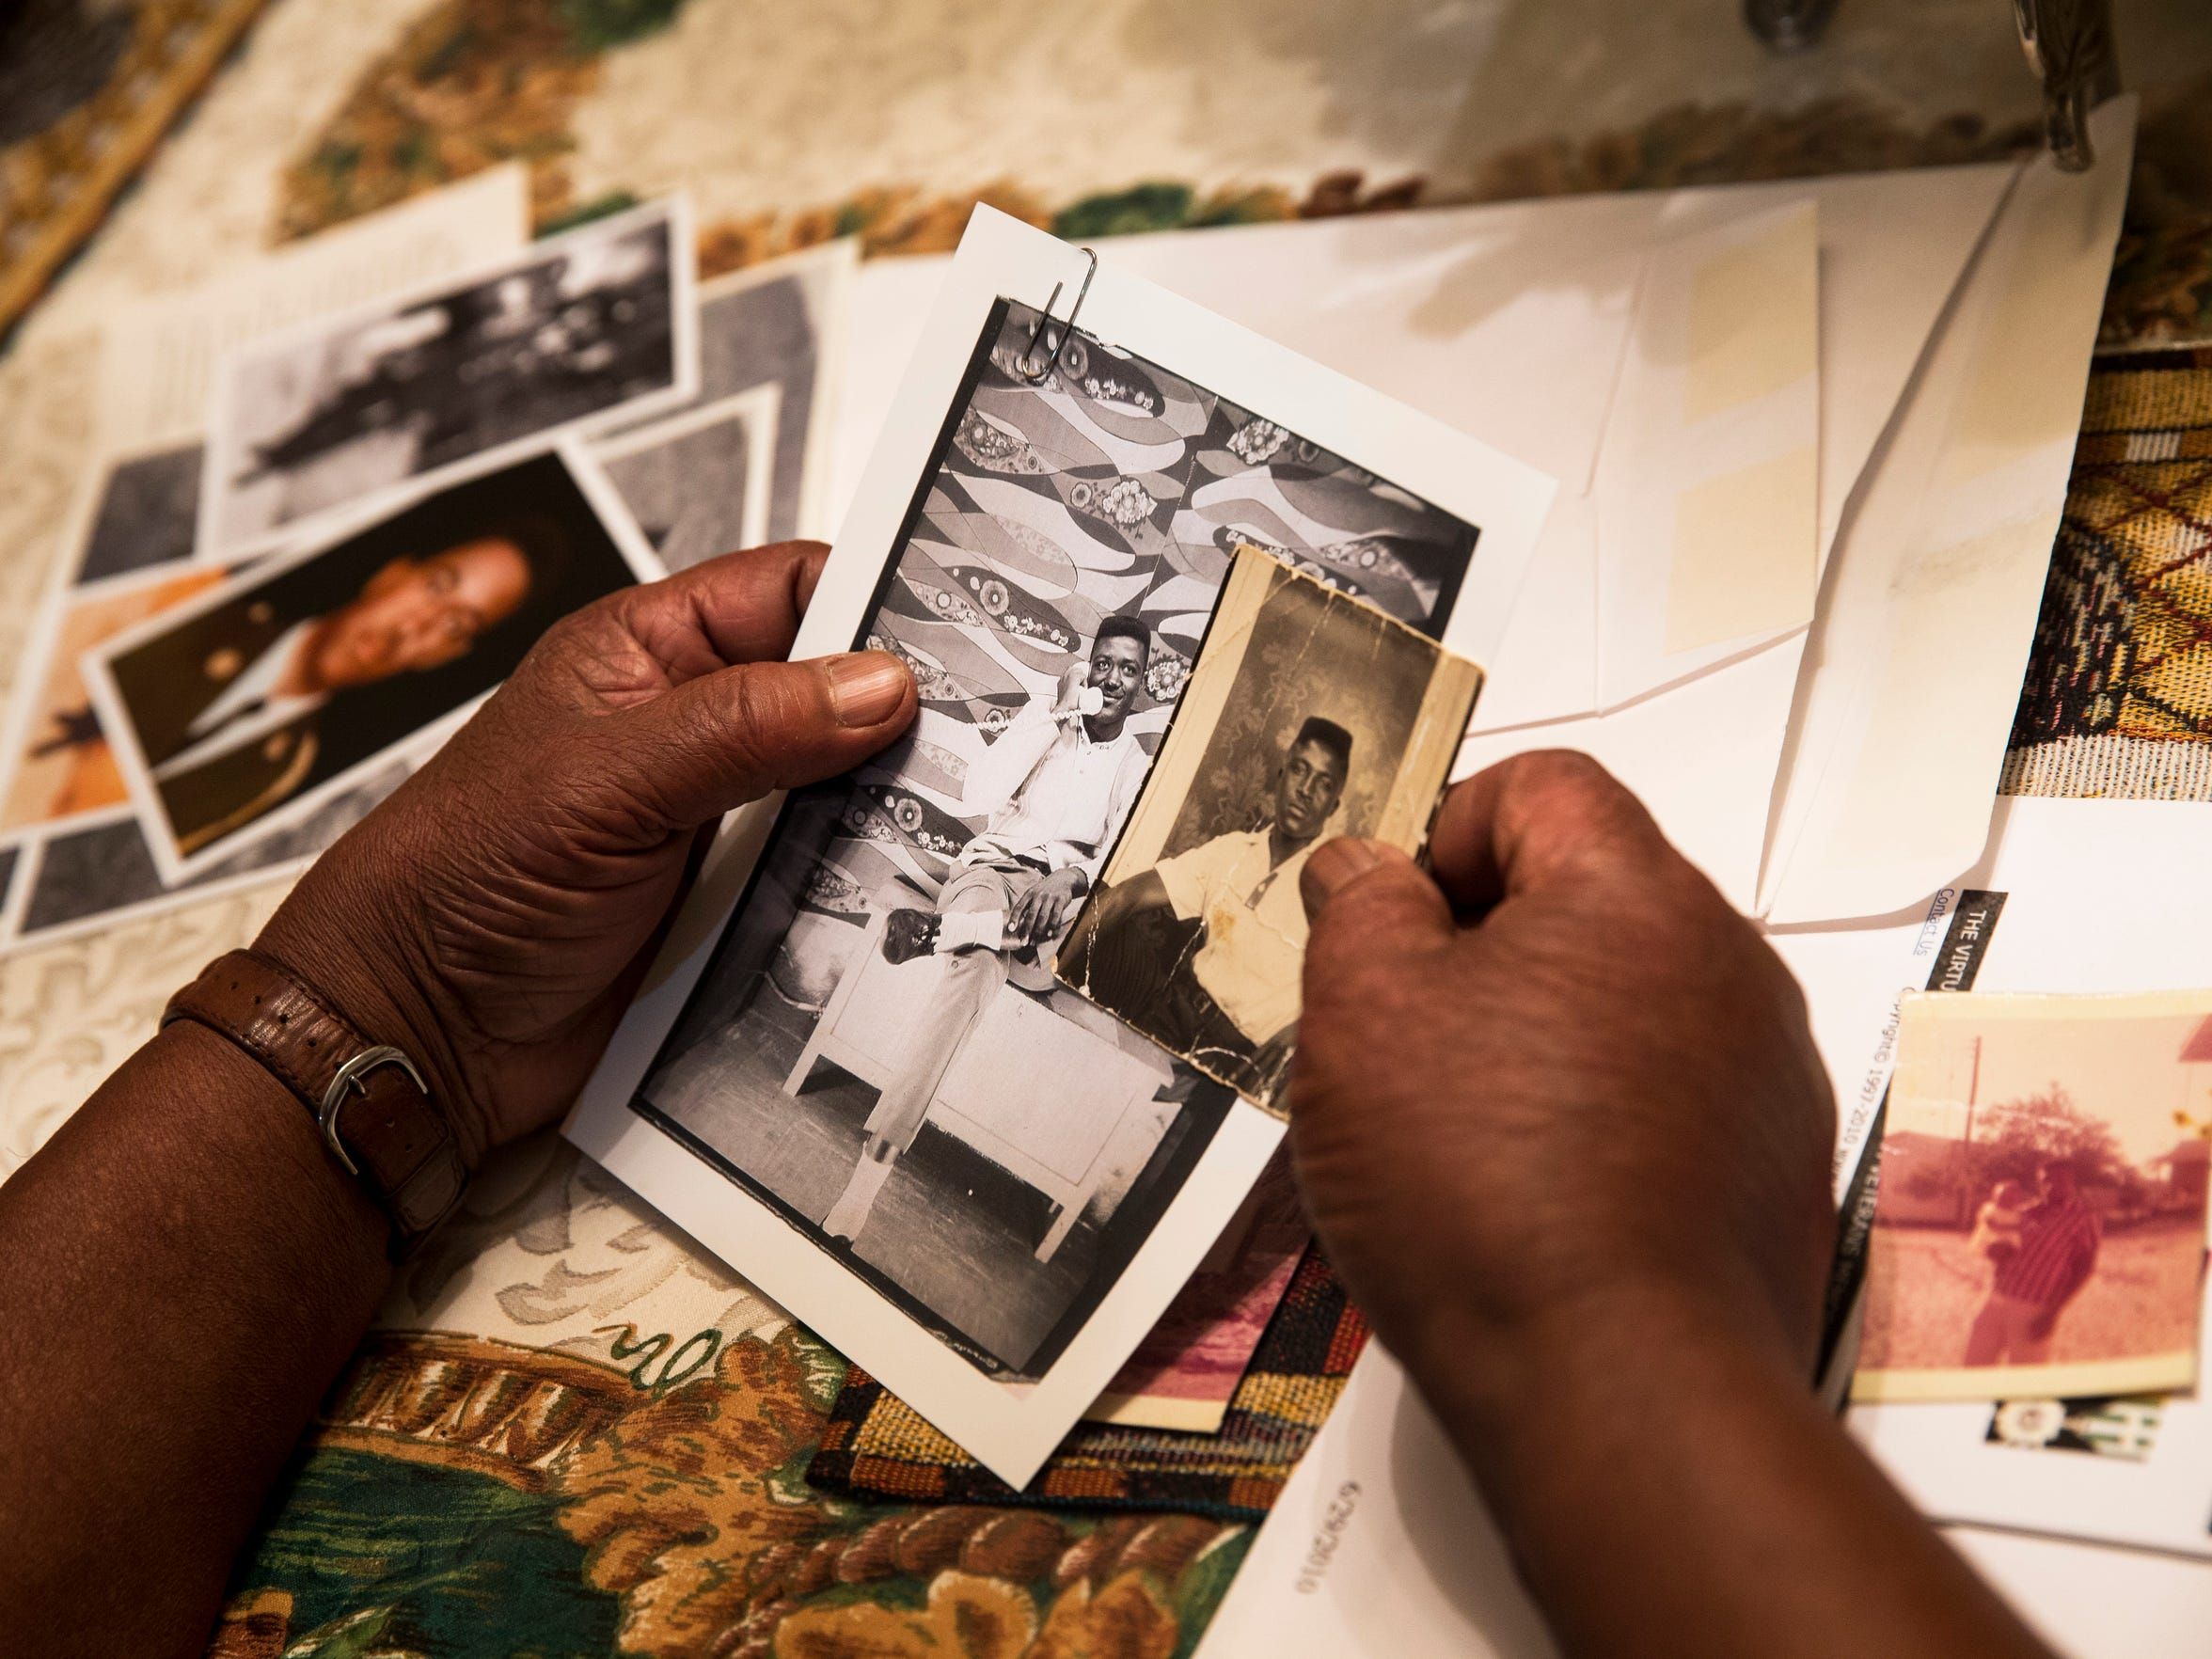 Orsie Anthony, one of two surviving Anthony brothers, compares a photo of himself, right, to a photo of his brother Charlie at his home in Naples on Tuesday, June 13, 2017. Orsie recalls family members always commenting on their close resemblance.